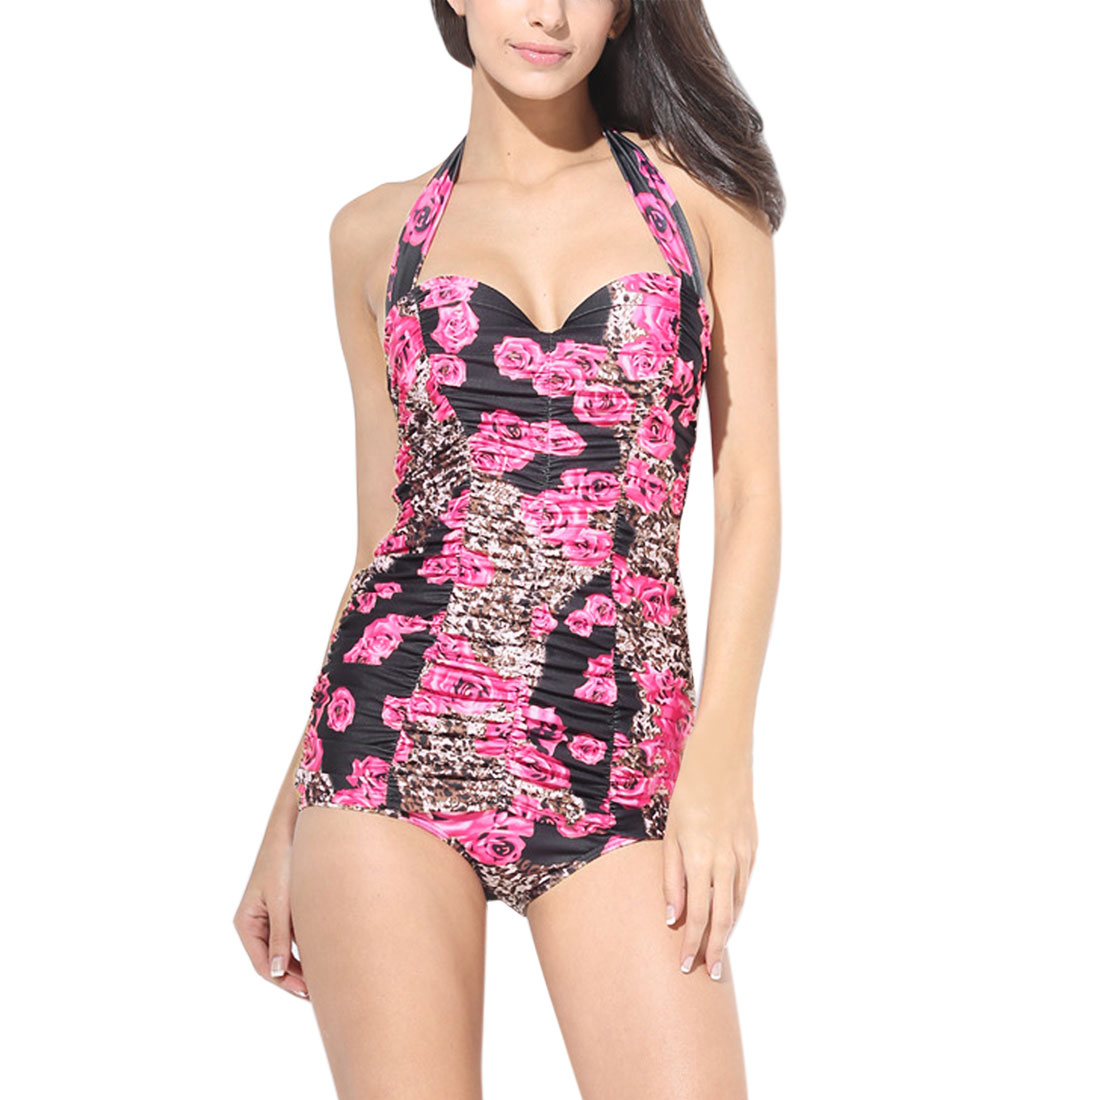 Women Floral Print Retro One-Piece Swimsuit Swimwear Bathing Suits Pink Blue